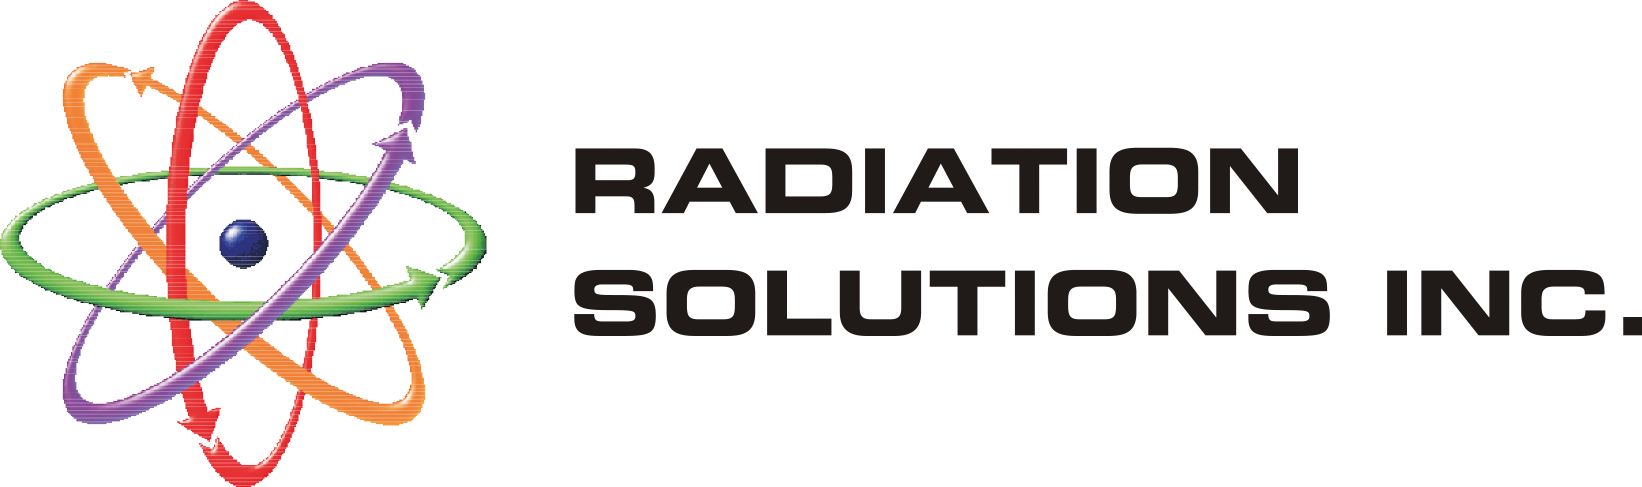 Radiation-Solutions4.png